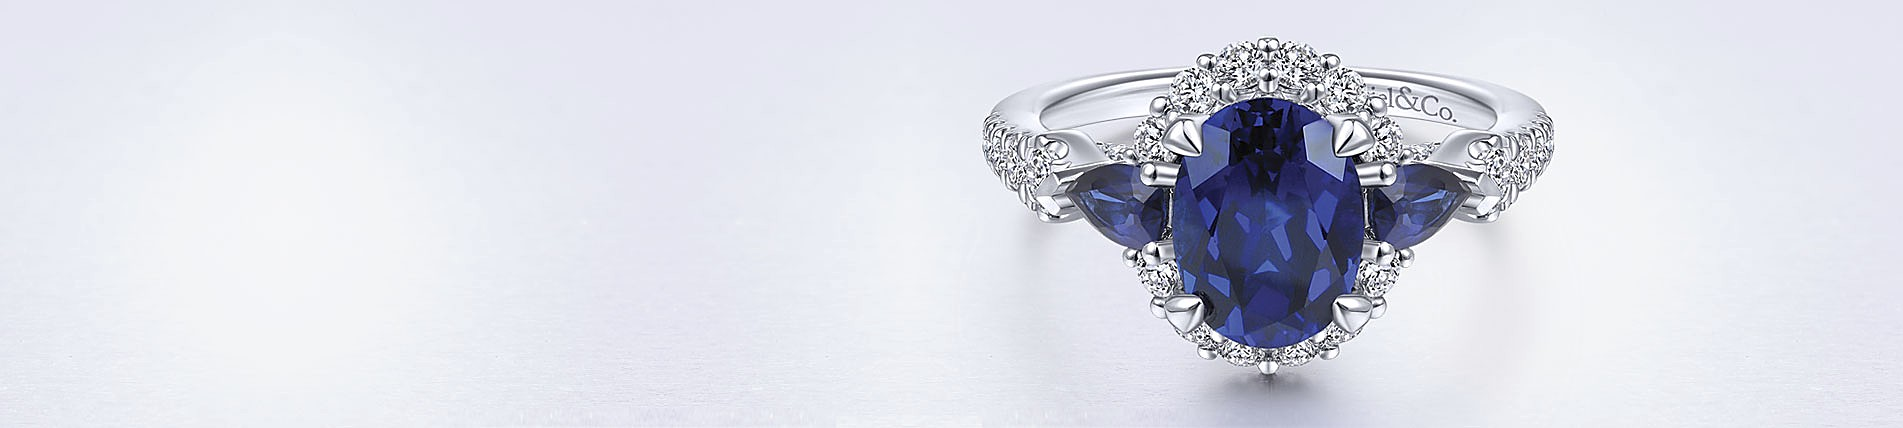 band tiffany three jewellery side with stones co stone rings engagement shown ml sapphire wedding tf ct am